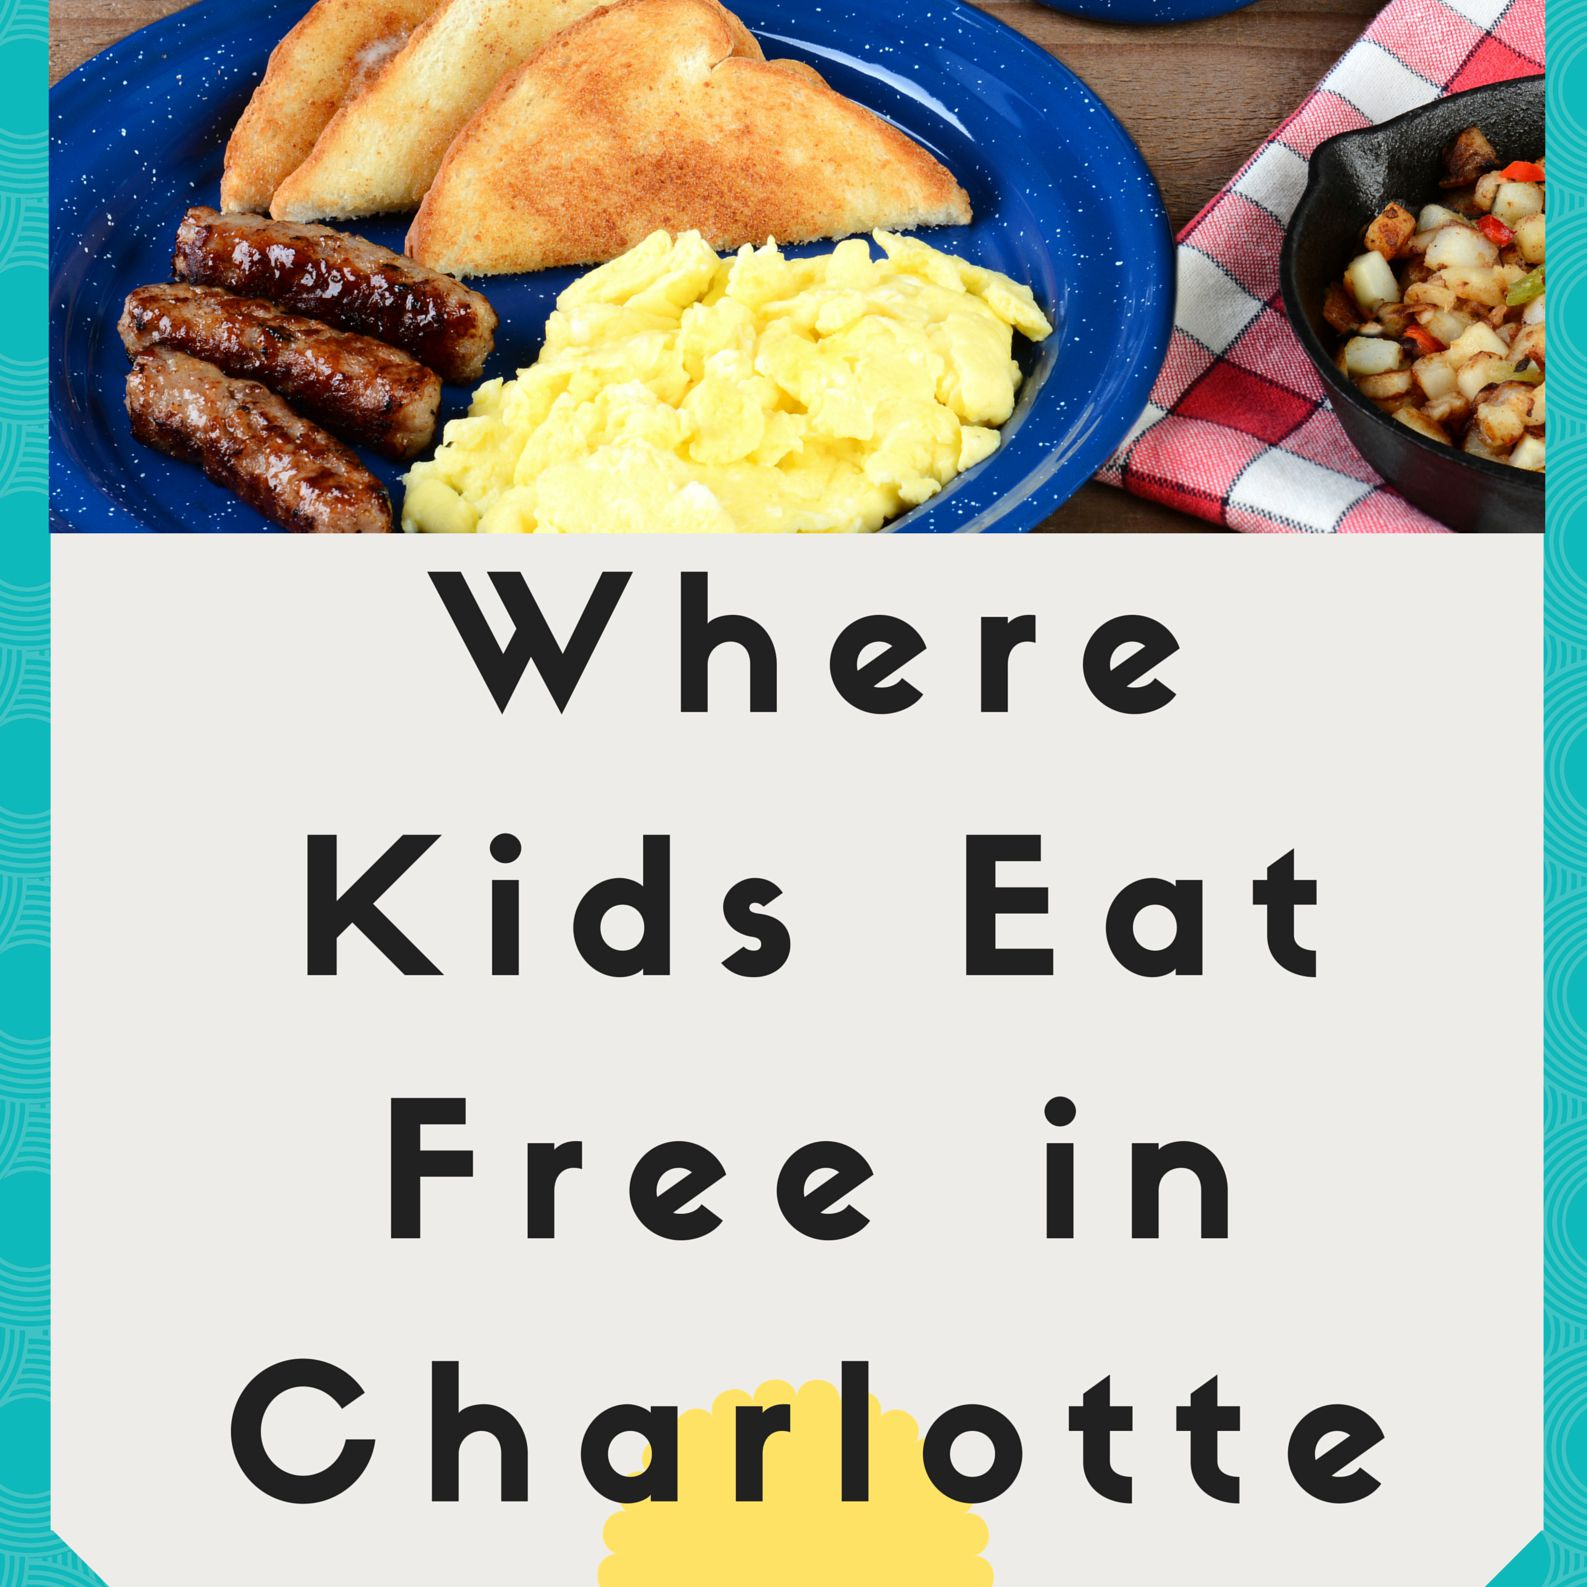 Where Kids Eat Free in Charlotte on Tuesday